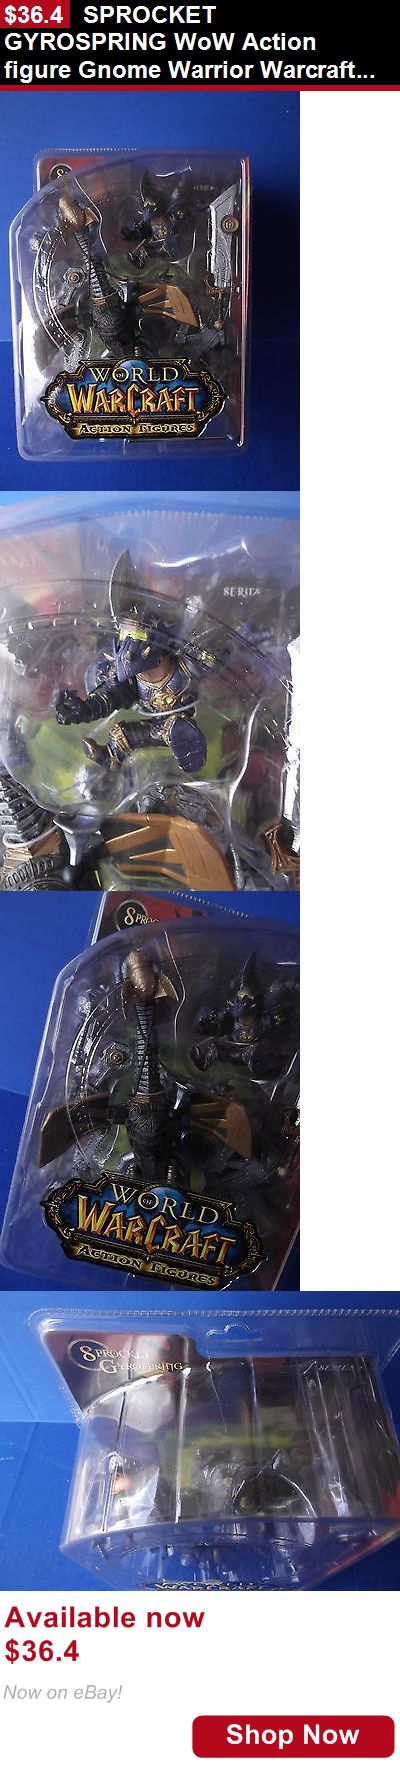 Telescope Mirrors And Prisms: Sprocket Gyrospring Wow Action Figure Gnome Warrior Warcraft Dc Series 2 BUY IT NOW ONLY: $36.4